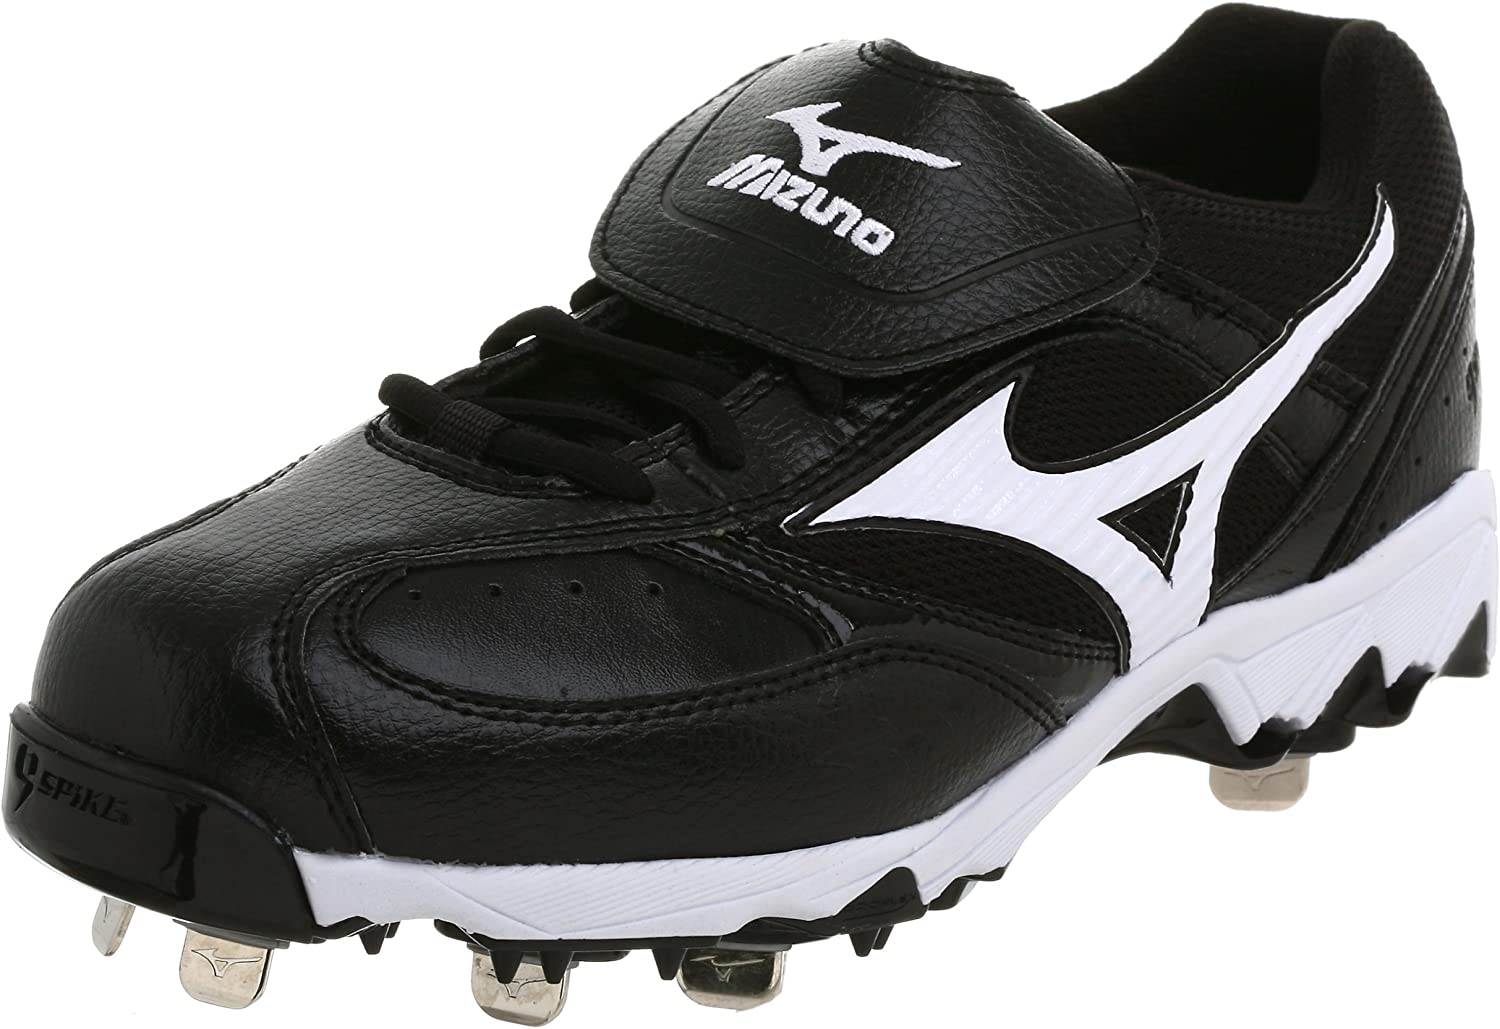 Mizuno Men's 9 Spike Vintage G5 Low Baseball Cleat,Black White,6.5 M